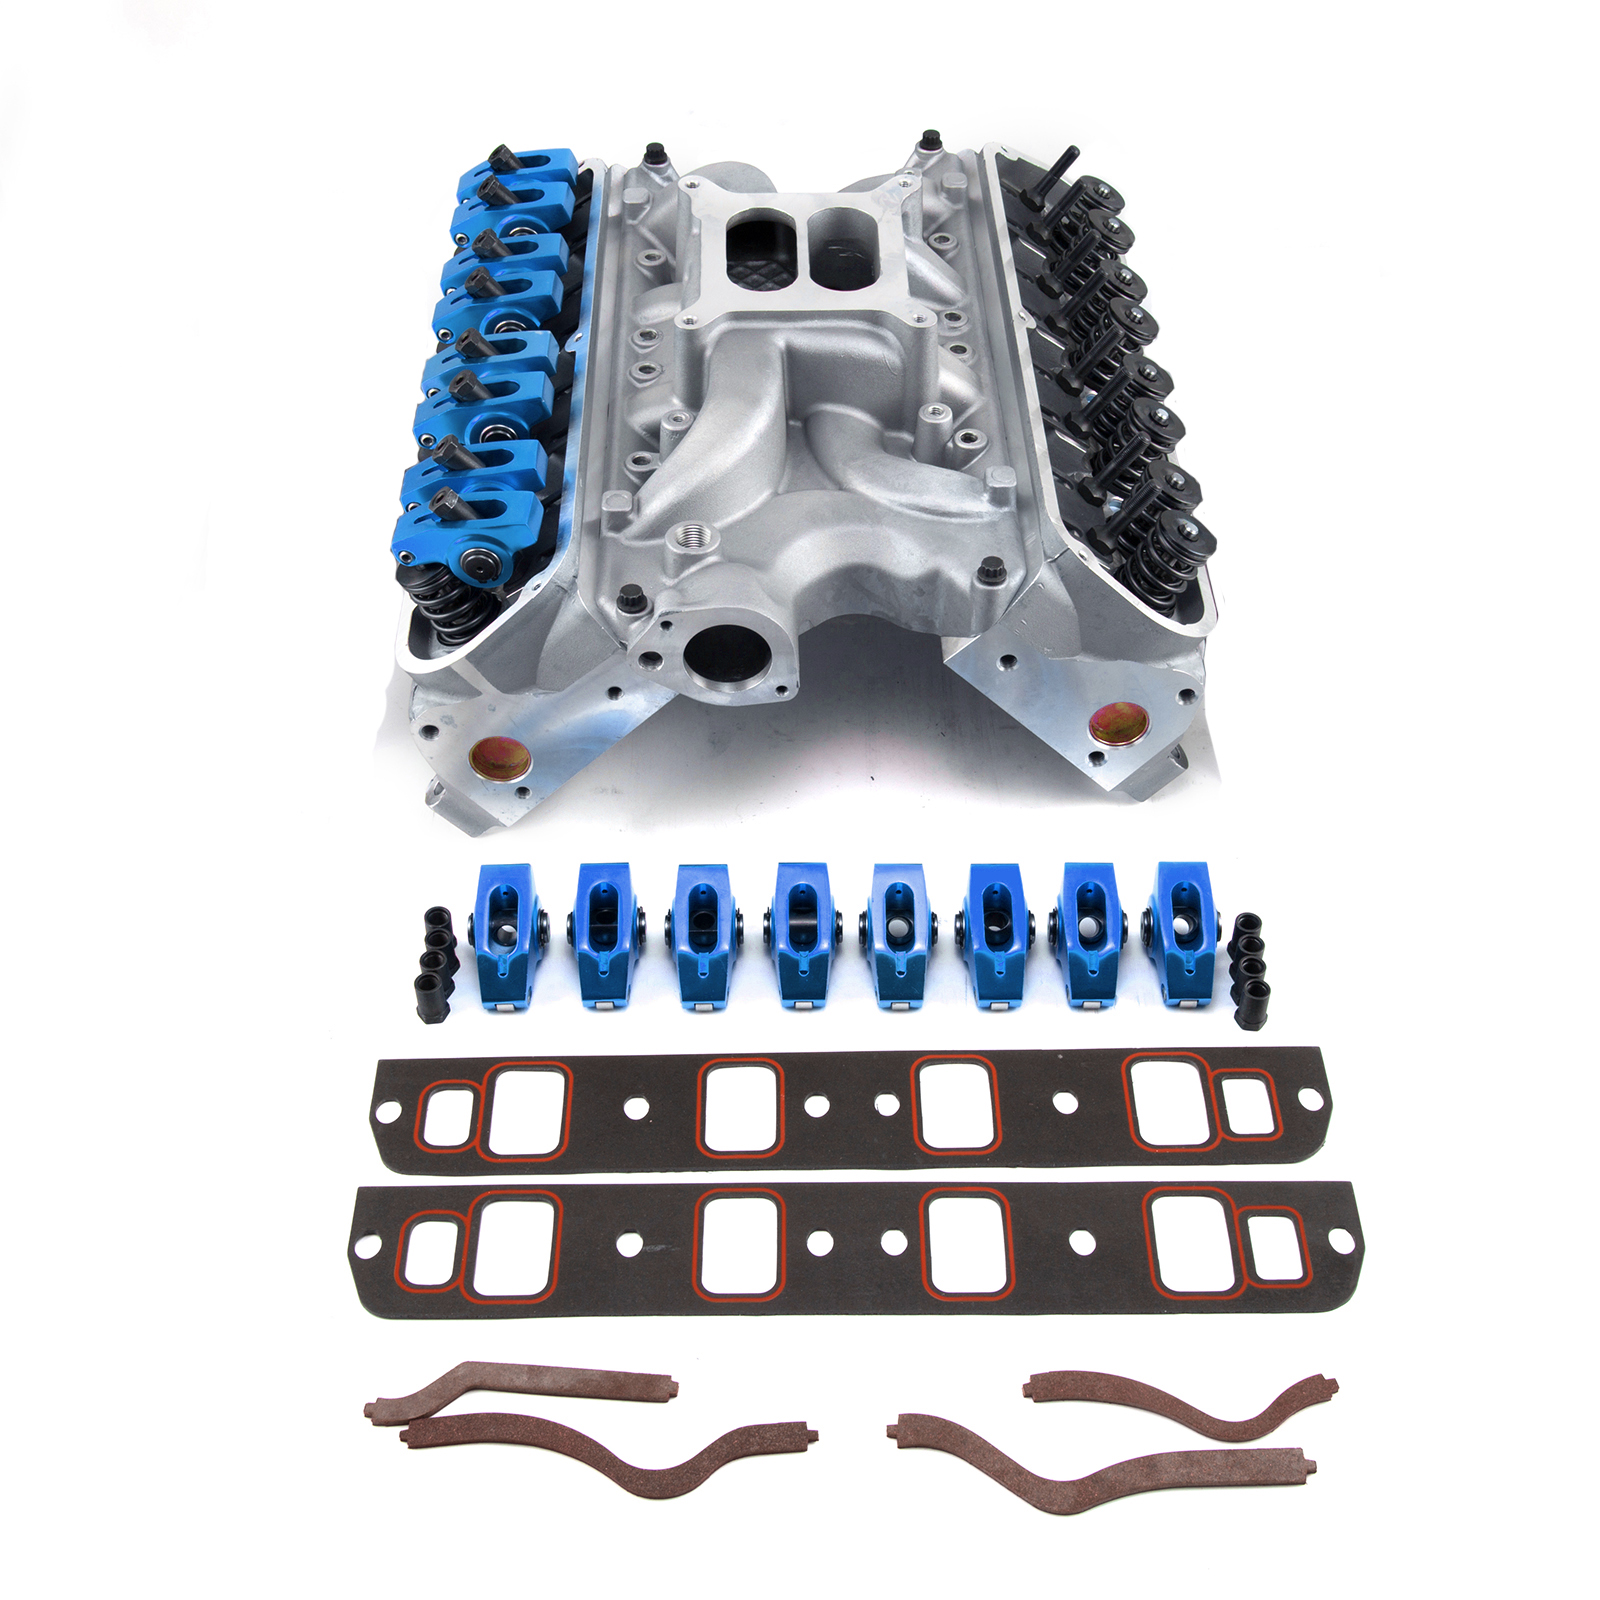 PCE® PCE435.1053 Ford SB 289 302 Windsor Hyd FT Cylinder Head Top End Engine Combo Kit